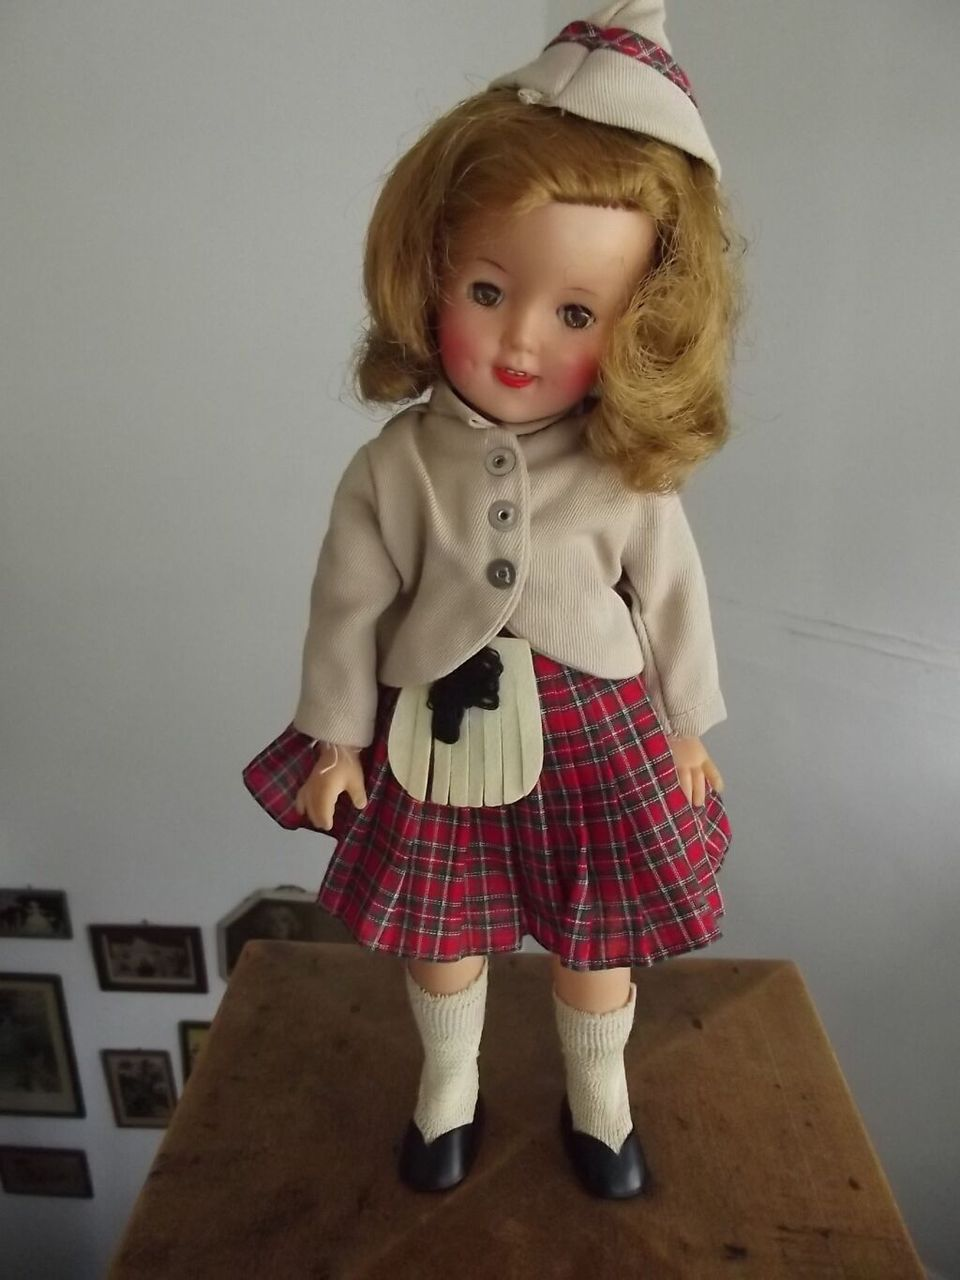 All Original 1957 Shirley Scottish Outfit